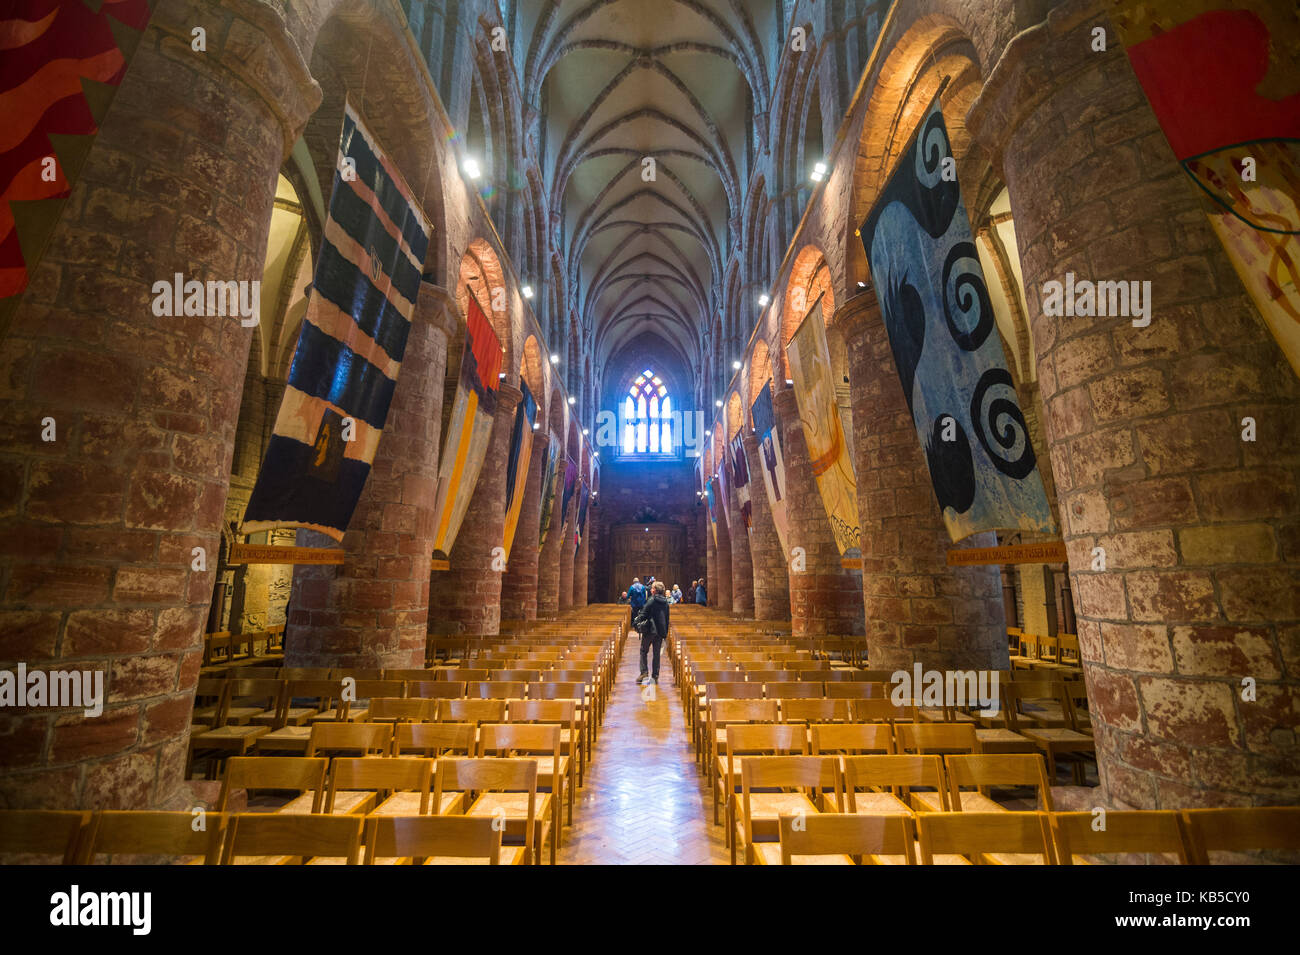 Interior of St. Magnus Cathedral, Kirkwall, Orkney Islands, Scotland, United Kingdom, Europe - Stock Image